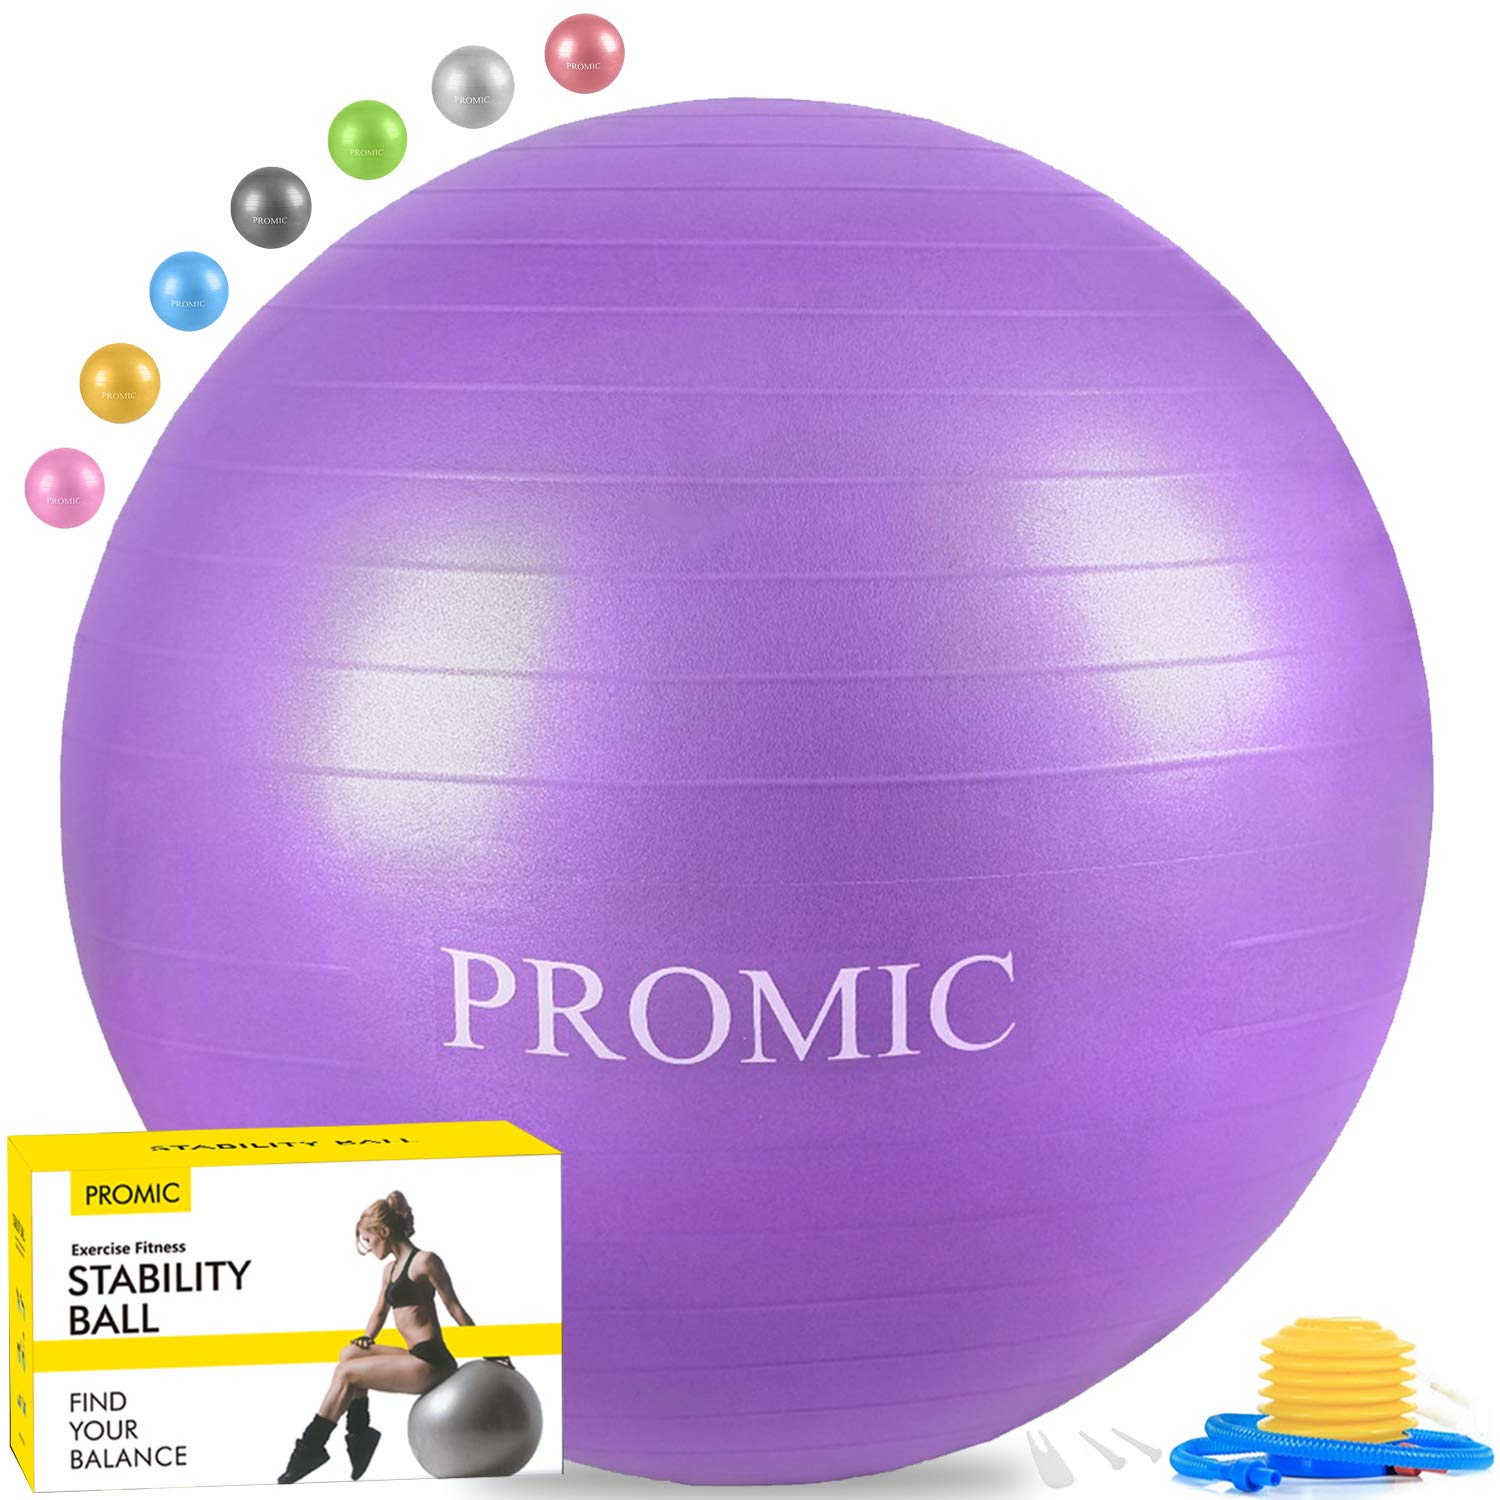 PROMIC Exercise Ball (75 cm) with Foot Pump, Professional Grade Anti Burst & Slip Resistant Stability Balance Yoga Ball for Yoga, Workout, Cardio Drumming, Classroom, Work Ball Chair (Purple) by PROMIC